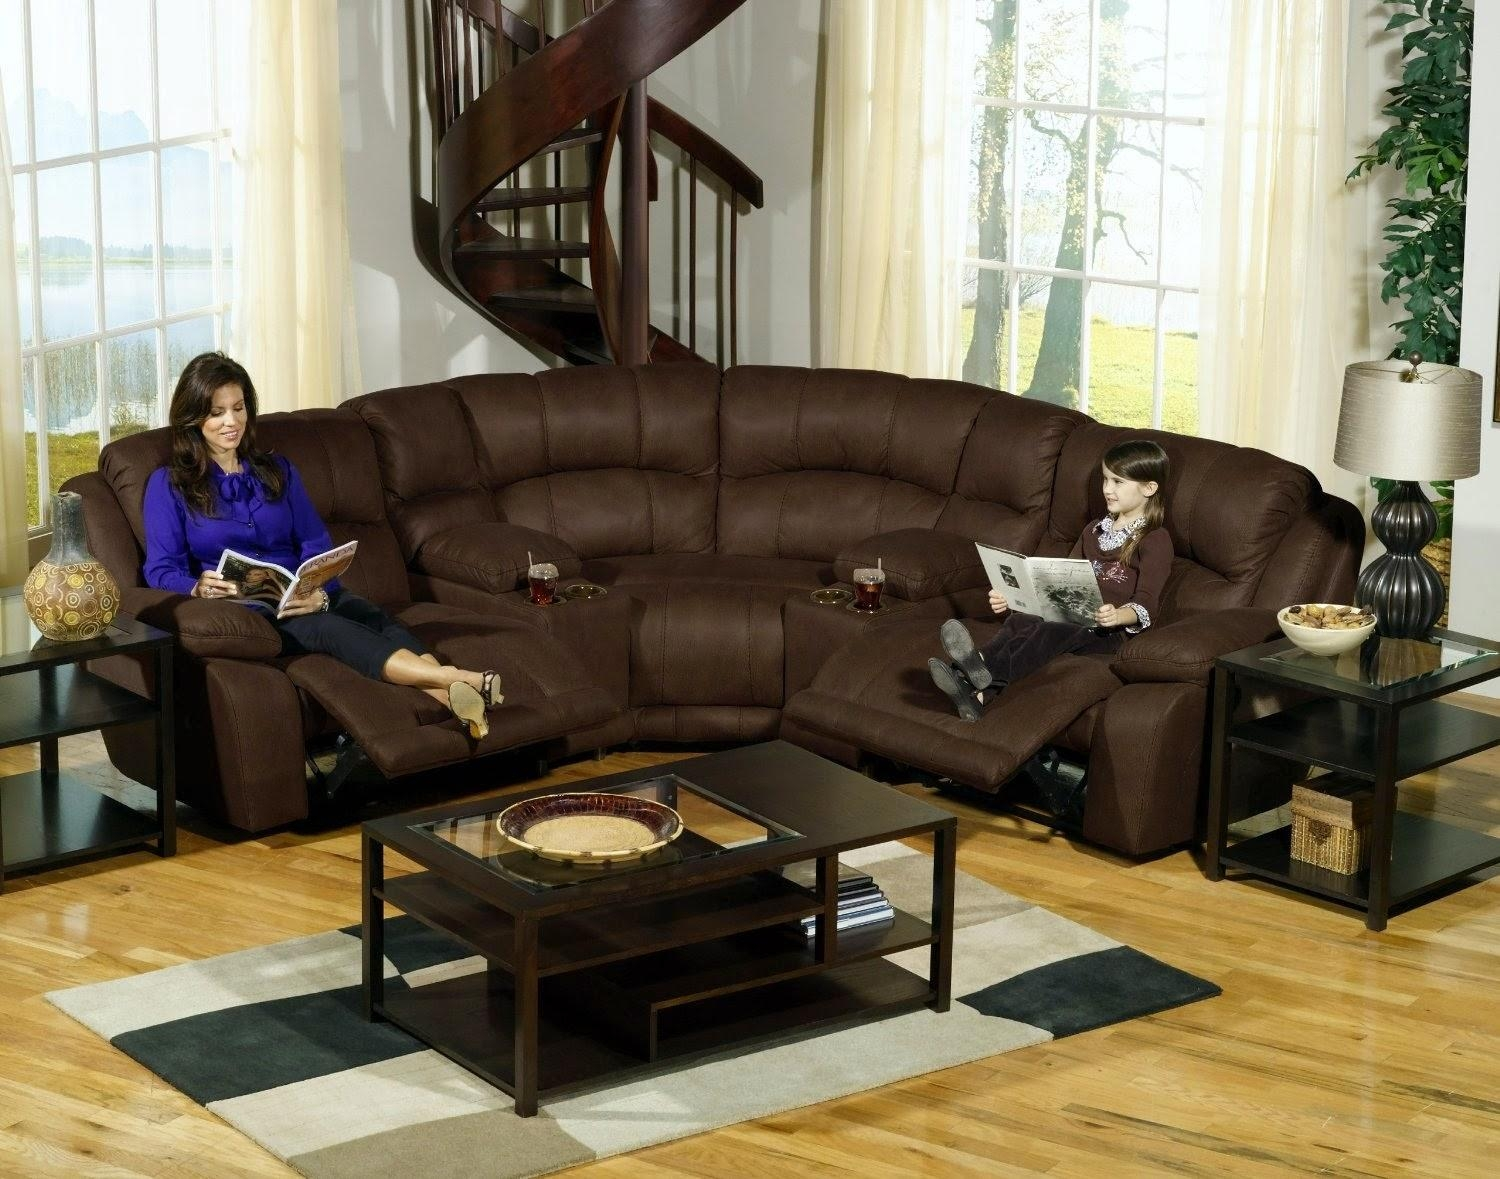 Sofas Center : Best Rated Power Recliner Sectional Sofa Reclining Inside Curved Sectional Sofa With Recliner (View 10 of 15)